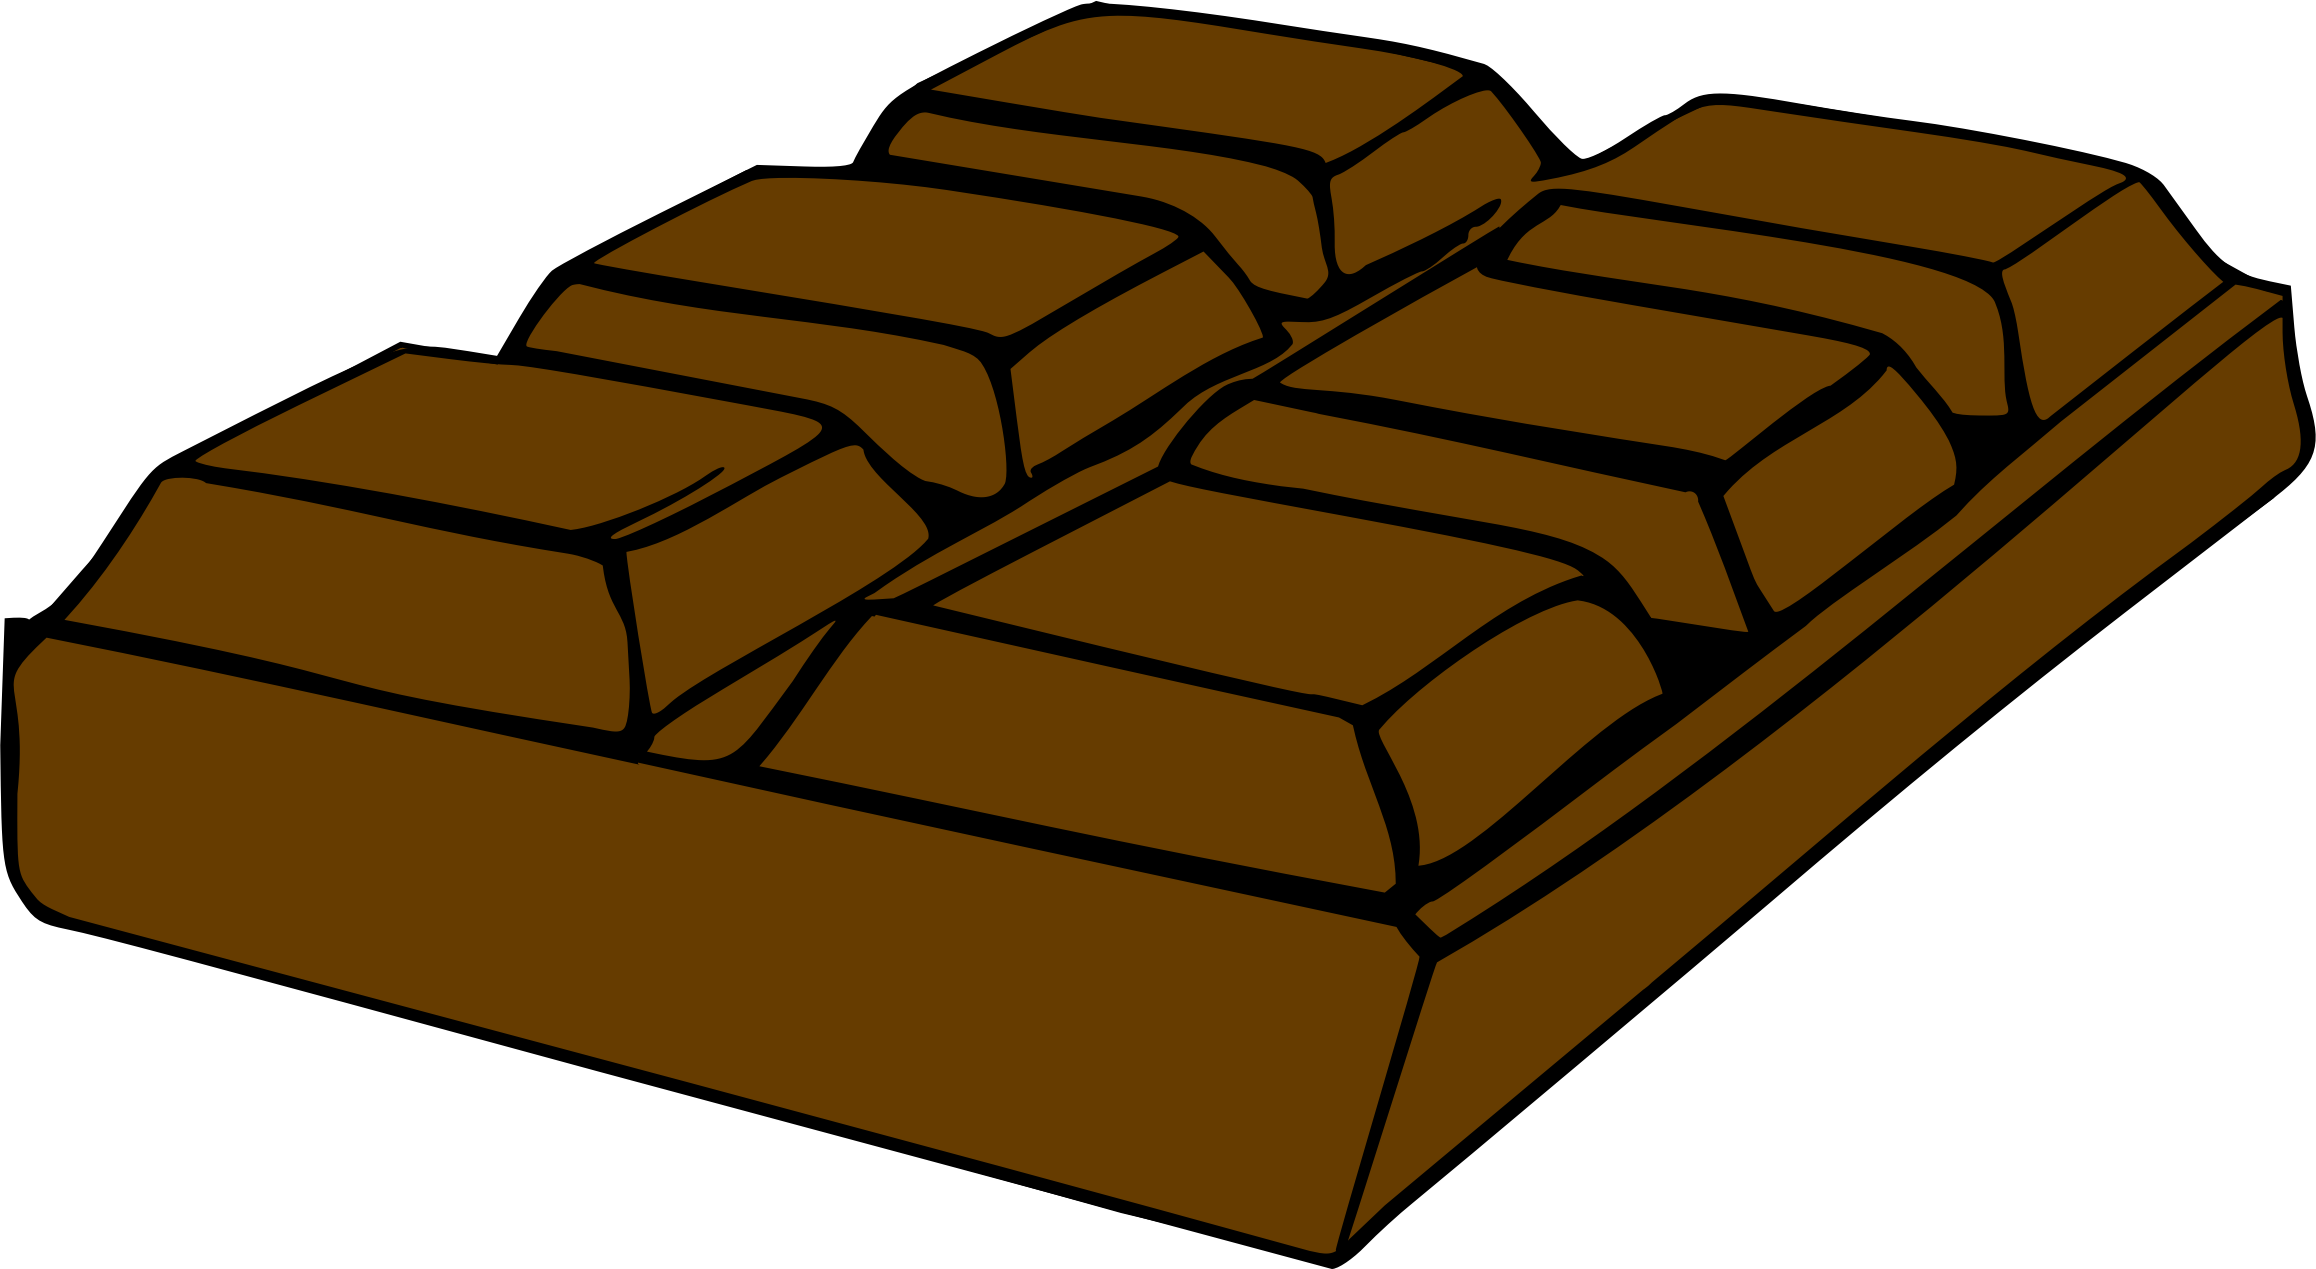 Words clipart chocolate, Words chocolate Transparent FREE.